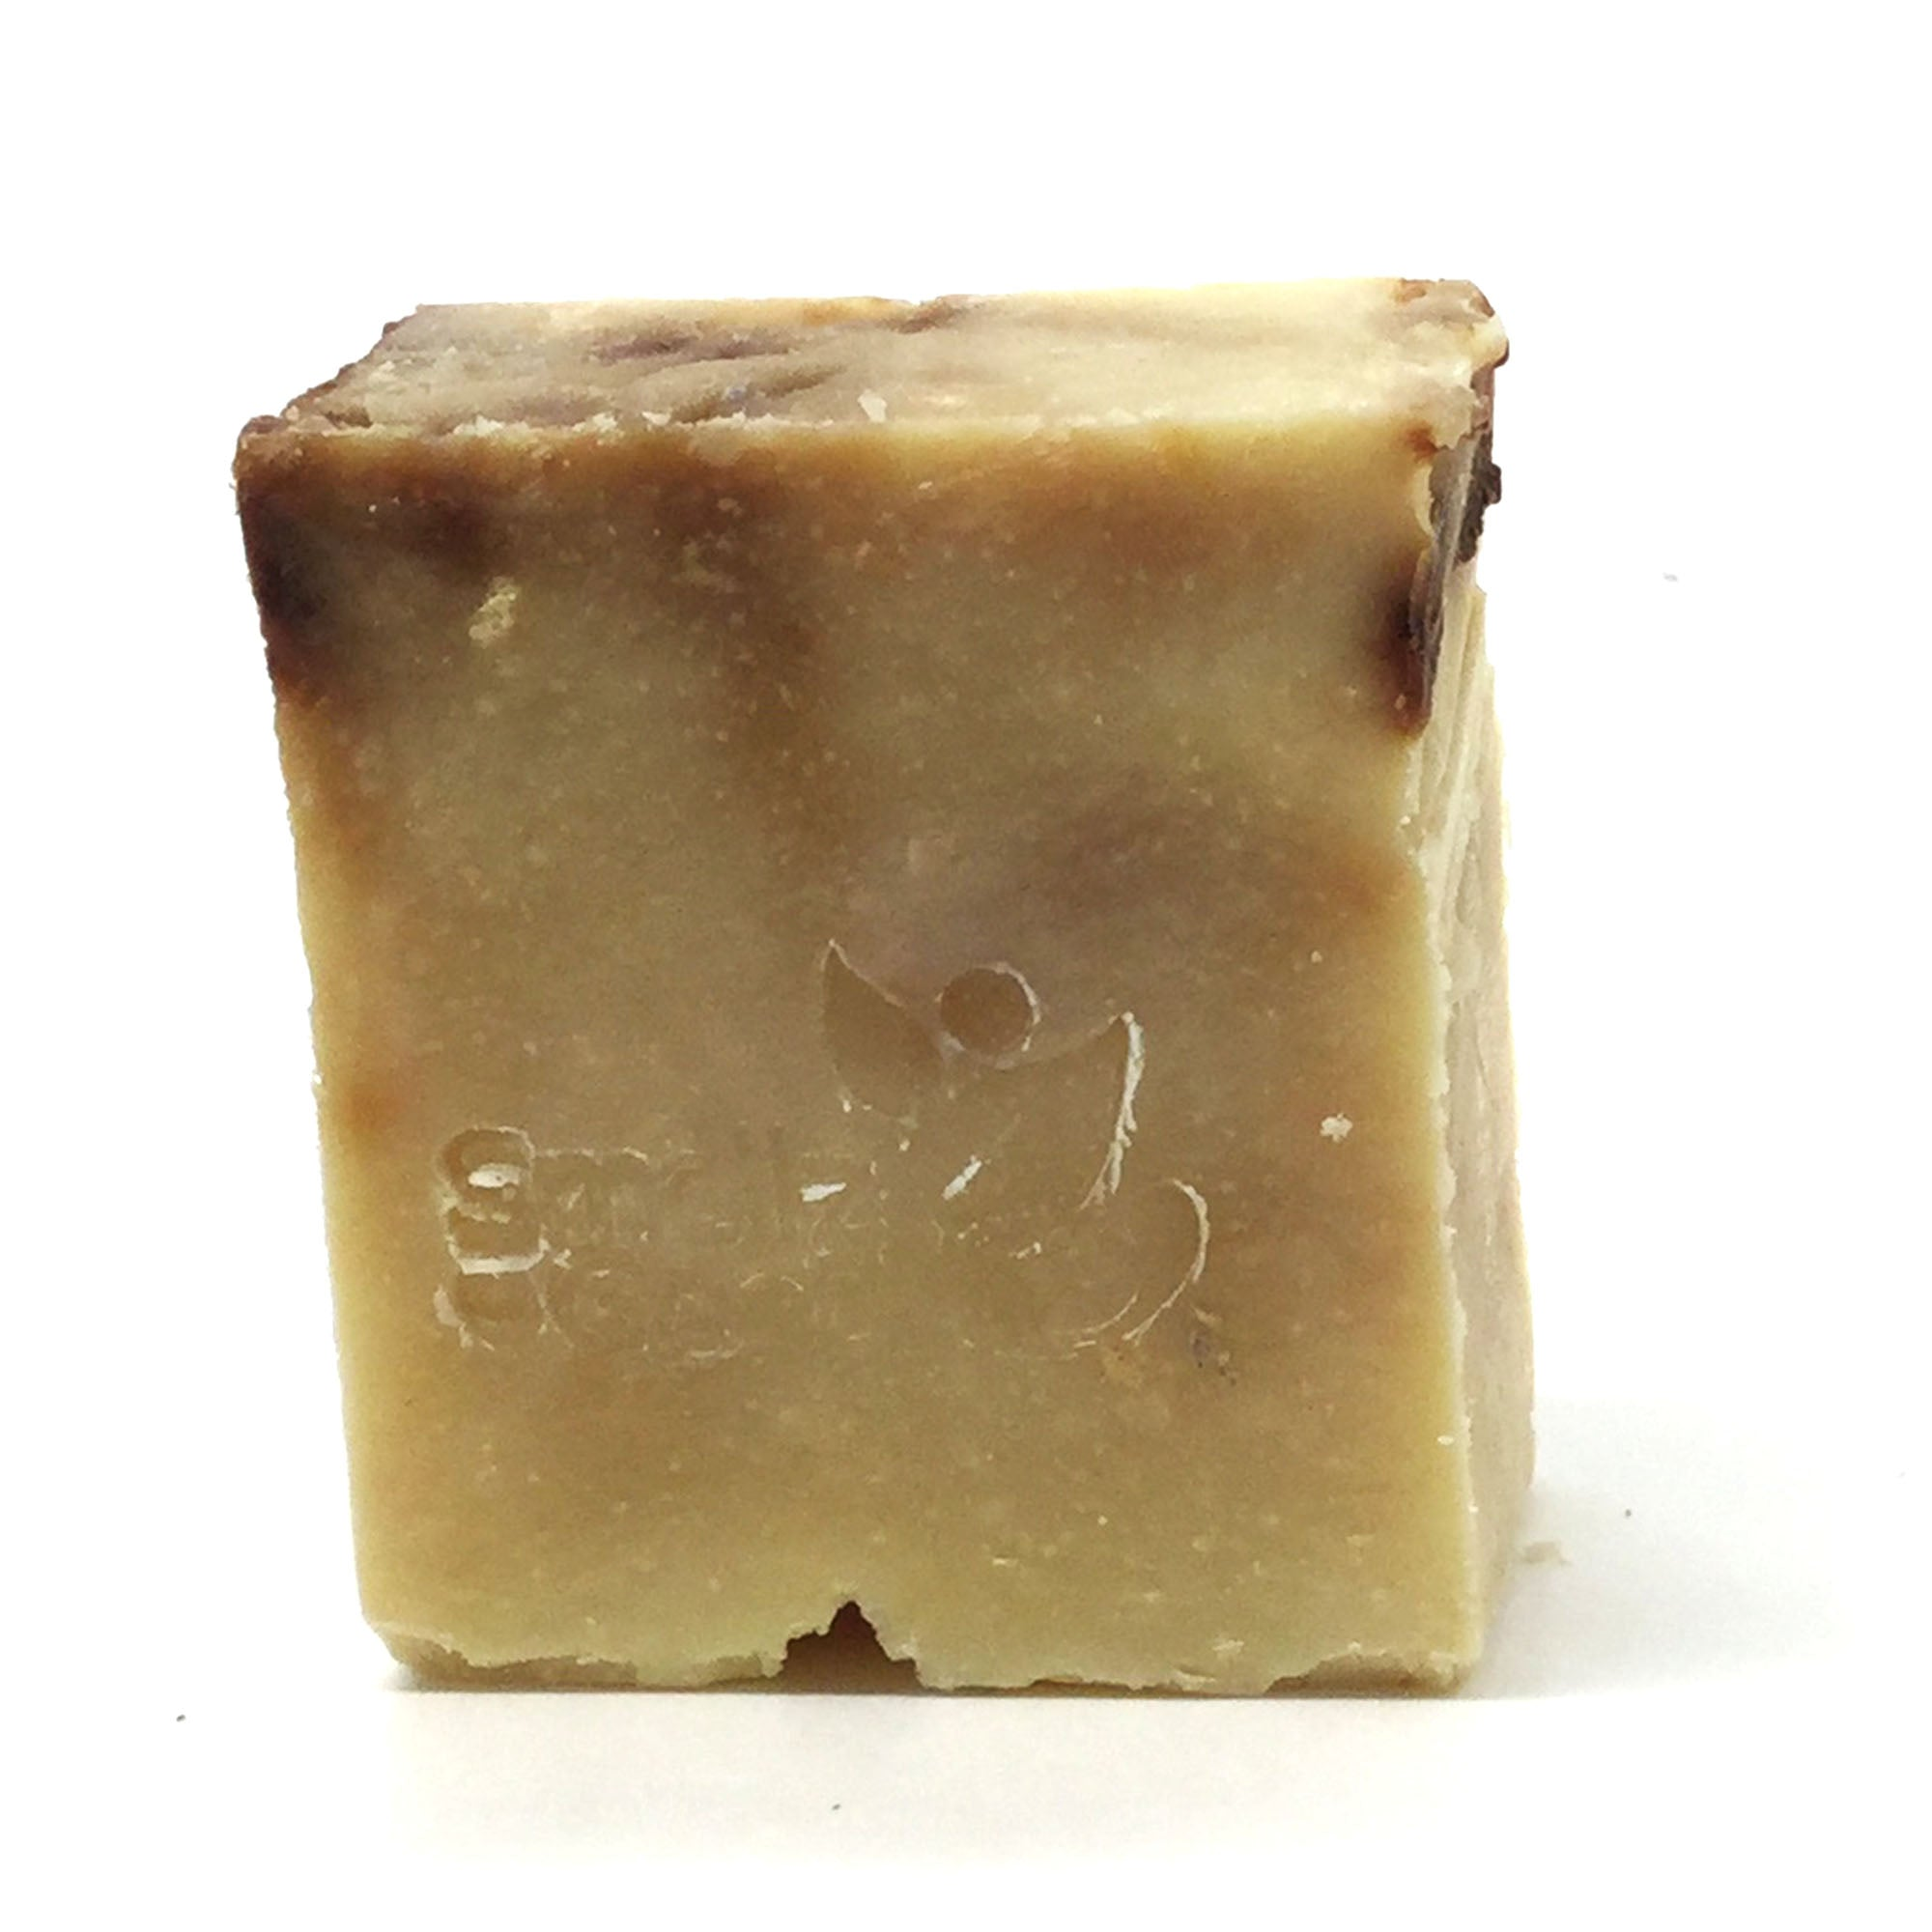 Moisturizing Goat Milk Soap | Honey Almond